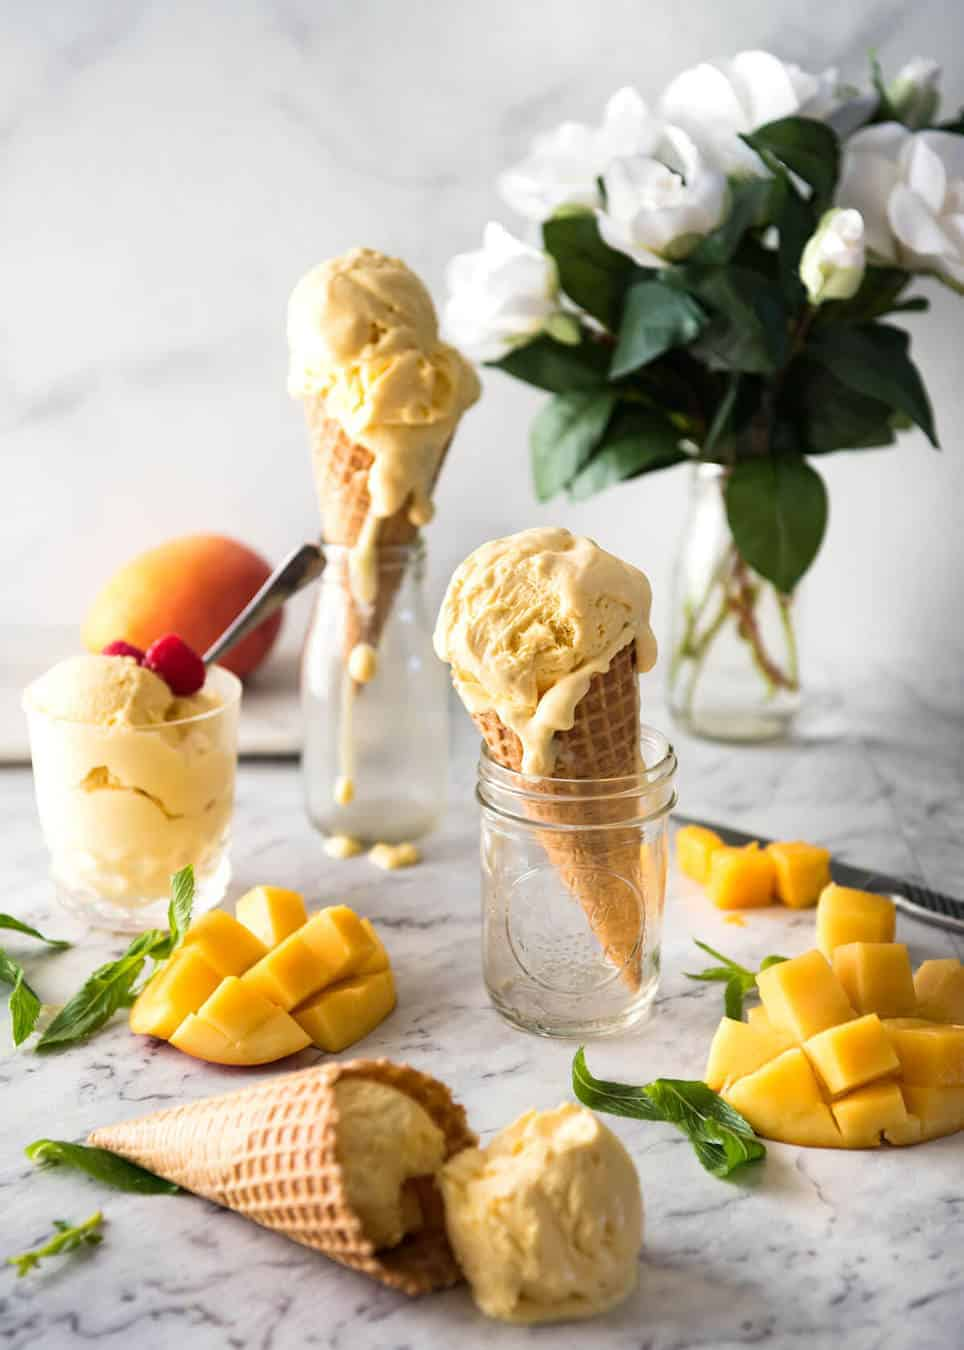 Homemade mango ice cream recipe no ice cream maker recipetin eats homemade mango ice cream in ice cream cones and in cups with cheeks of ccuart